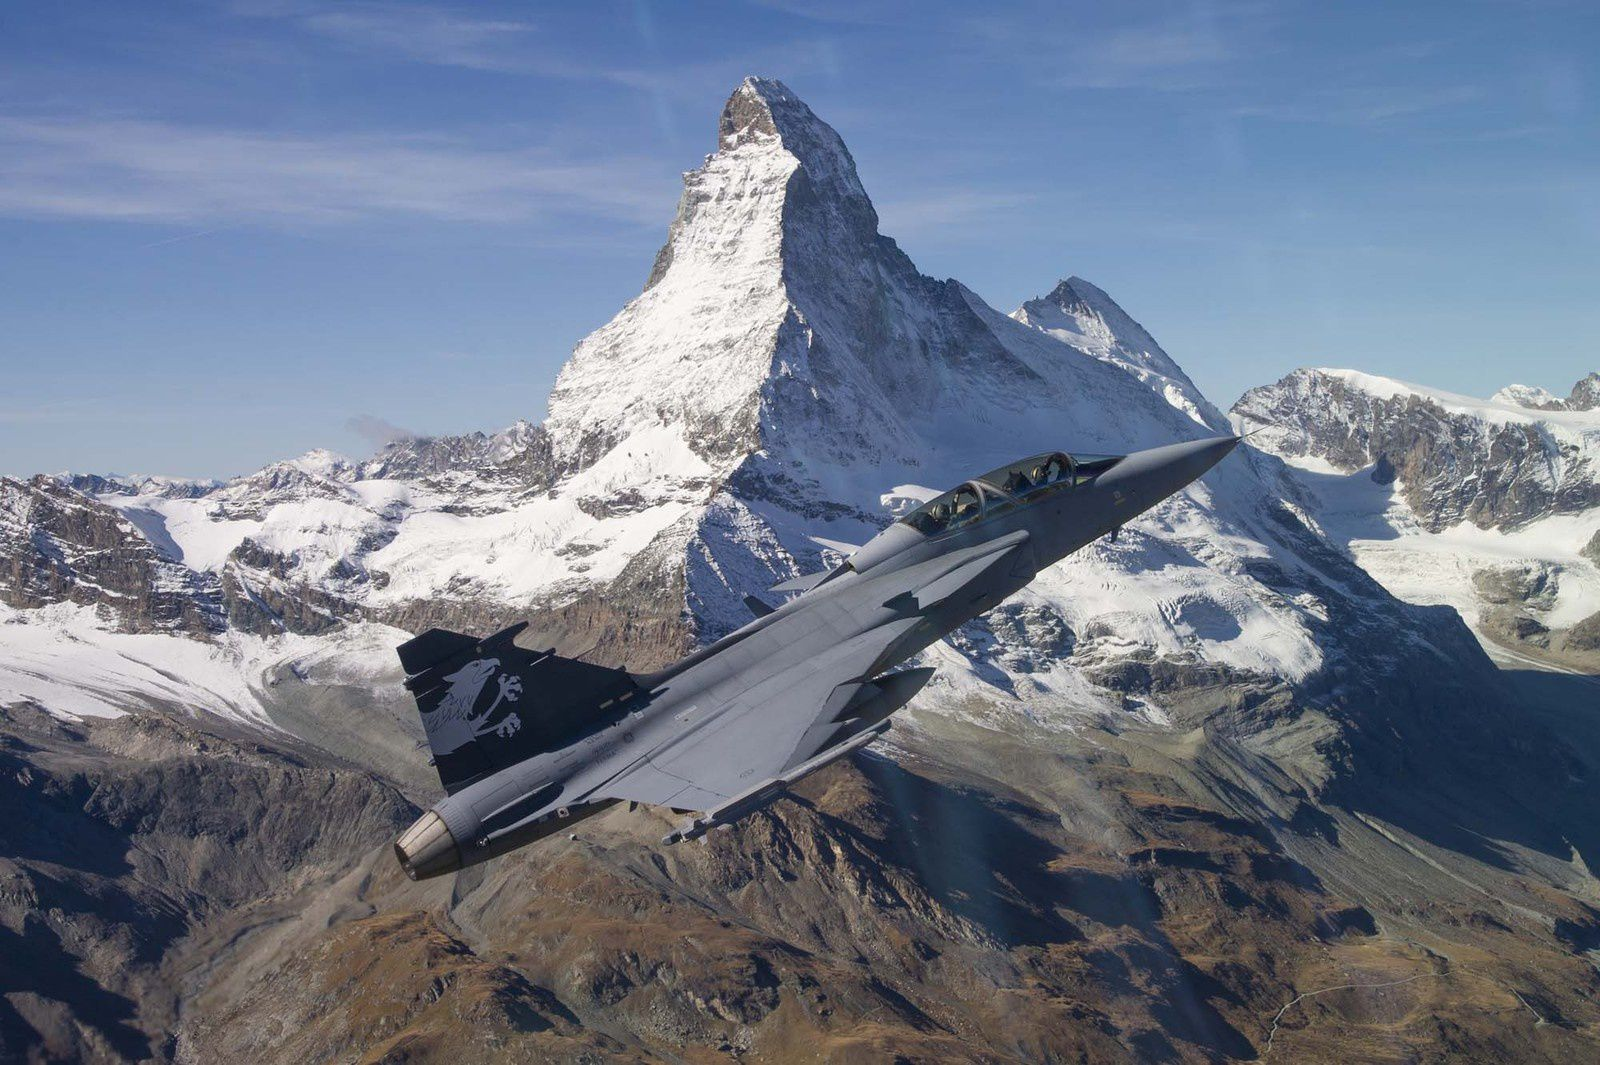 Gripen F Demonstrator. Au second plan, le Cervin (© DDPS)